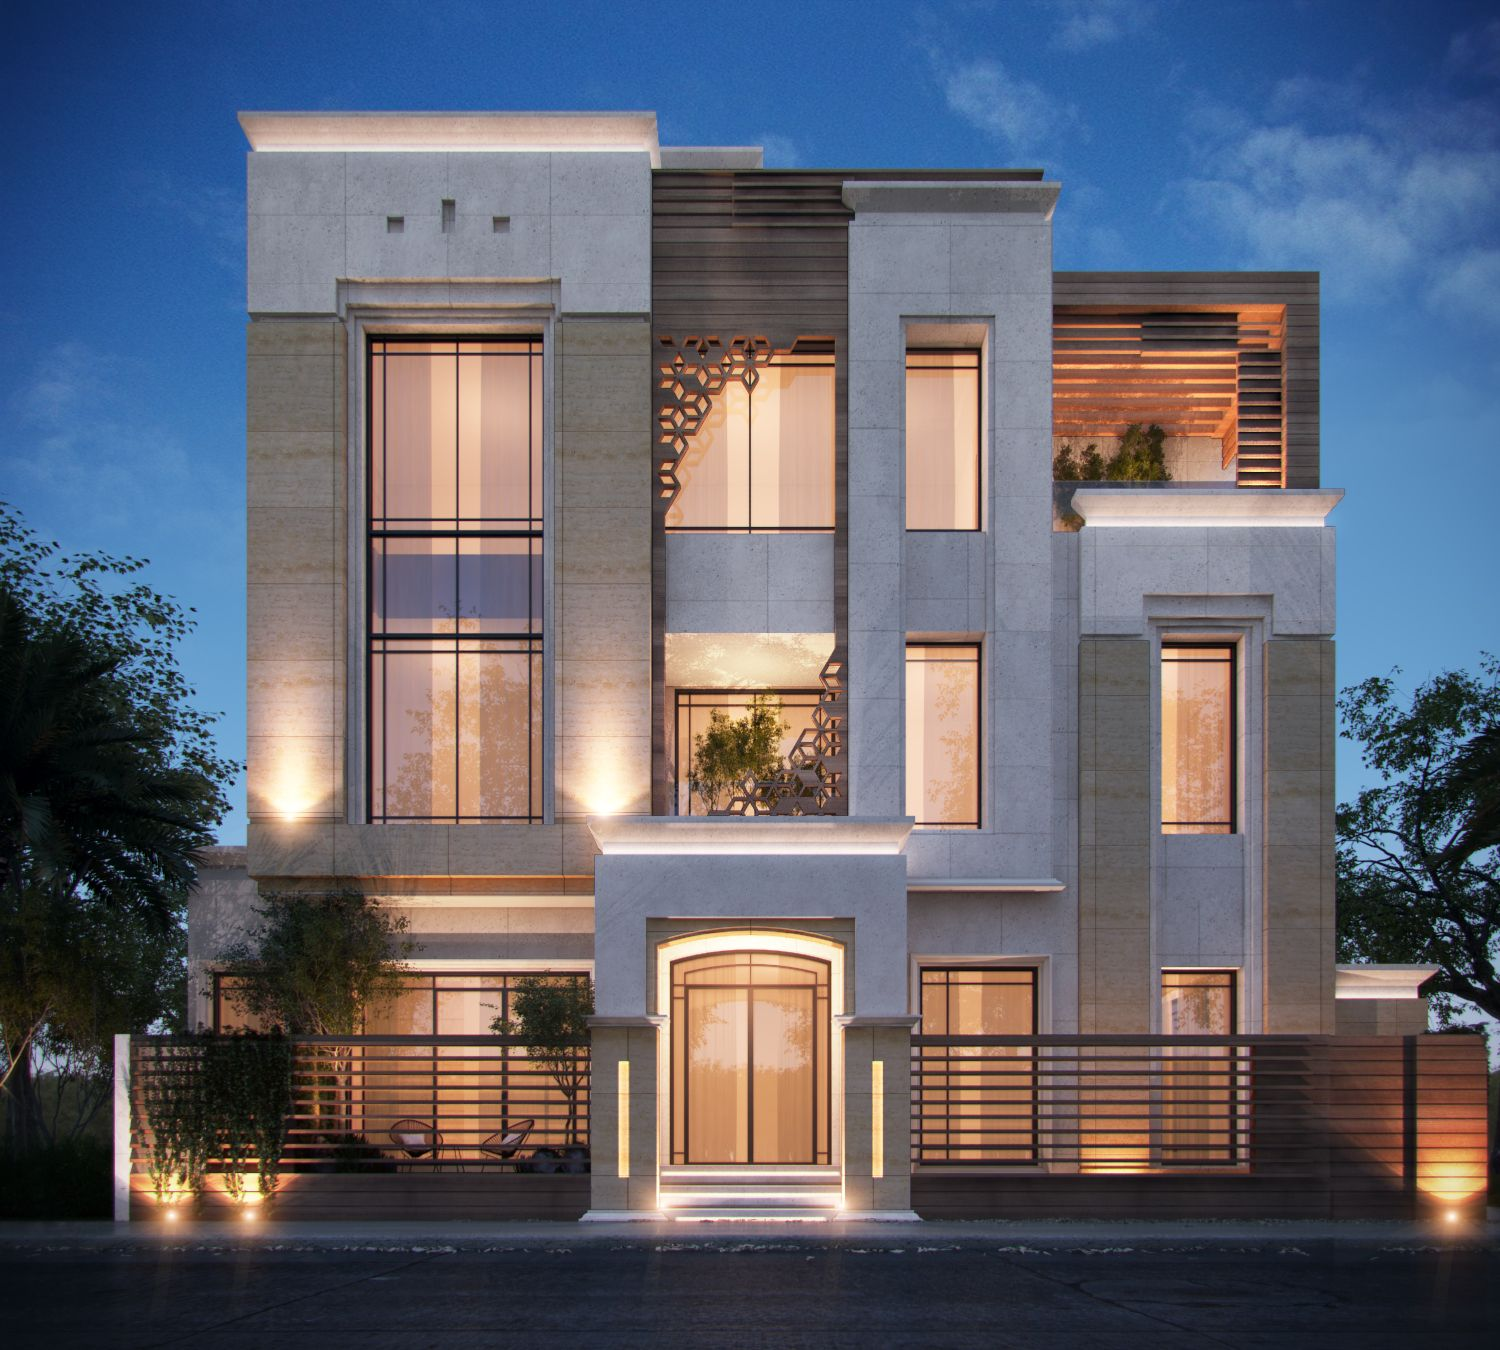 375 m private villa kuwait sarah sadeq architects sarah for Architecture de villa moderne